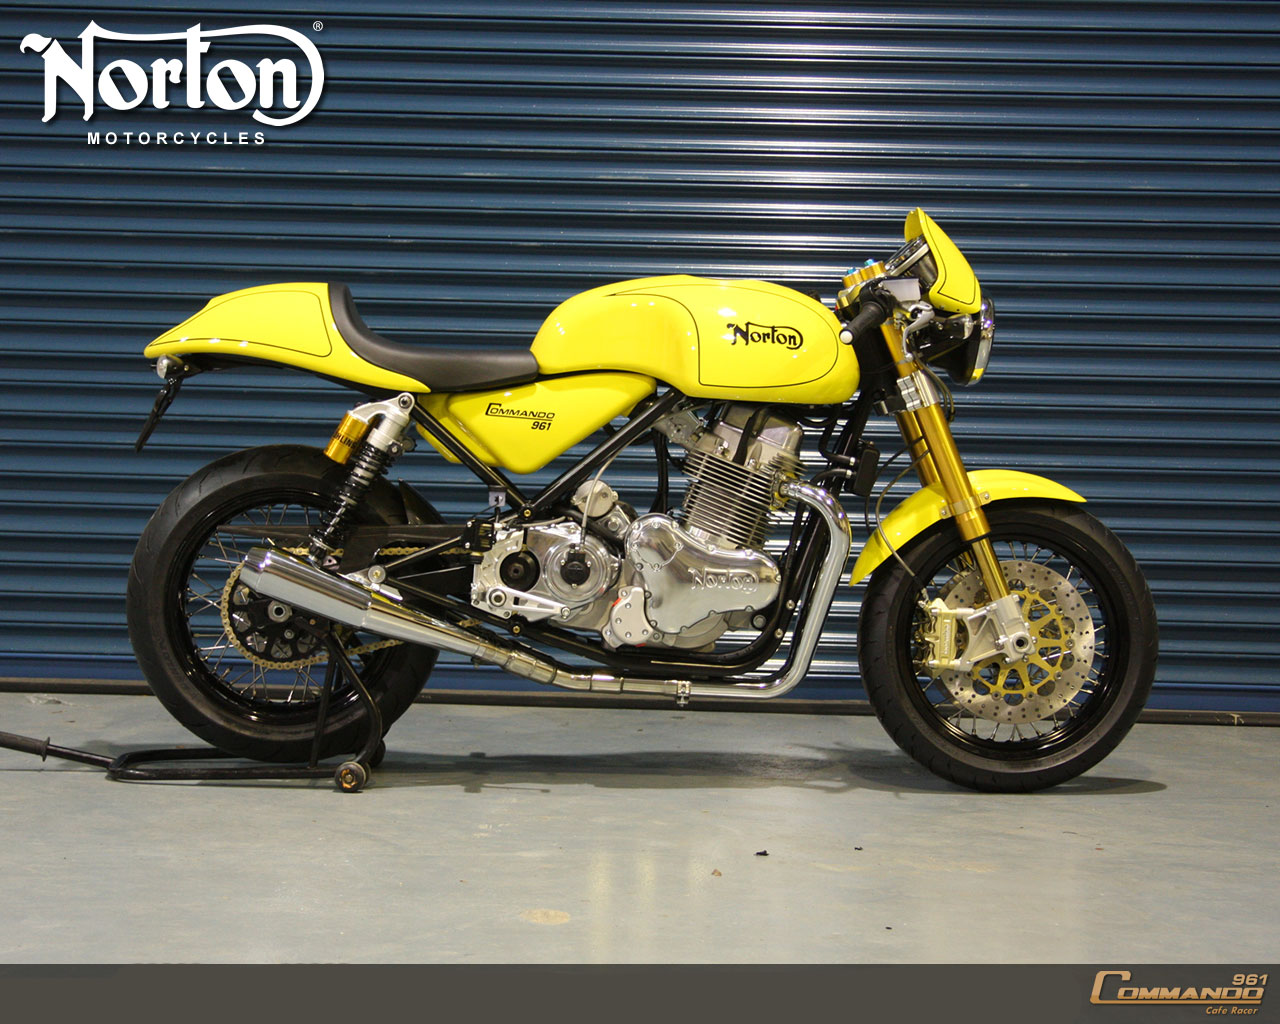 Motor Desktop Wallpaper: 2010 Norton Commando 961 Cafe Racer